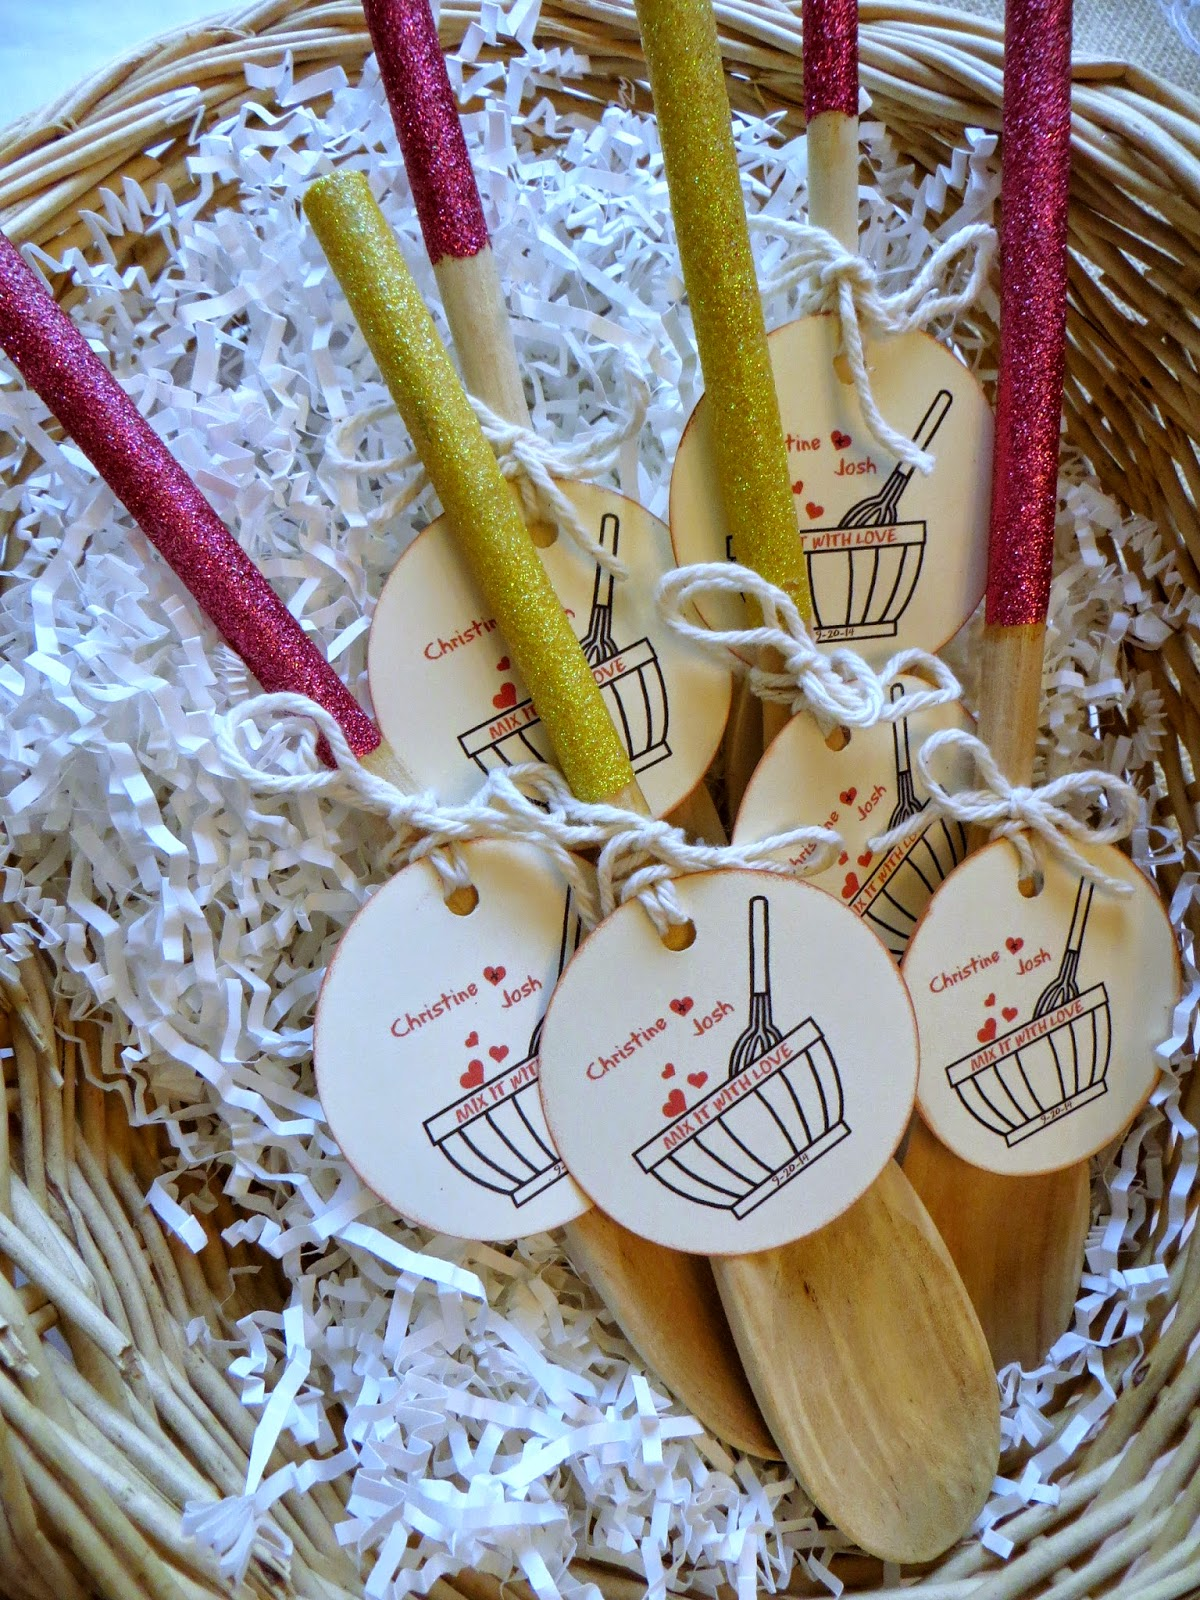 Crafty in Crosby: Bridal Shower Favors - Mix it With Love